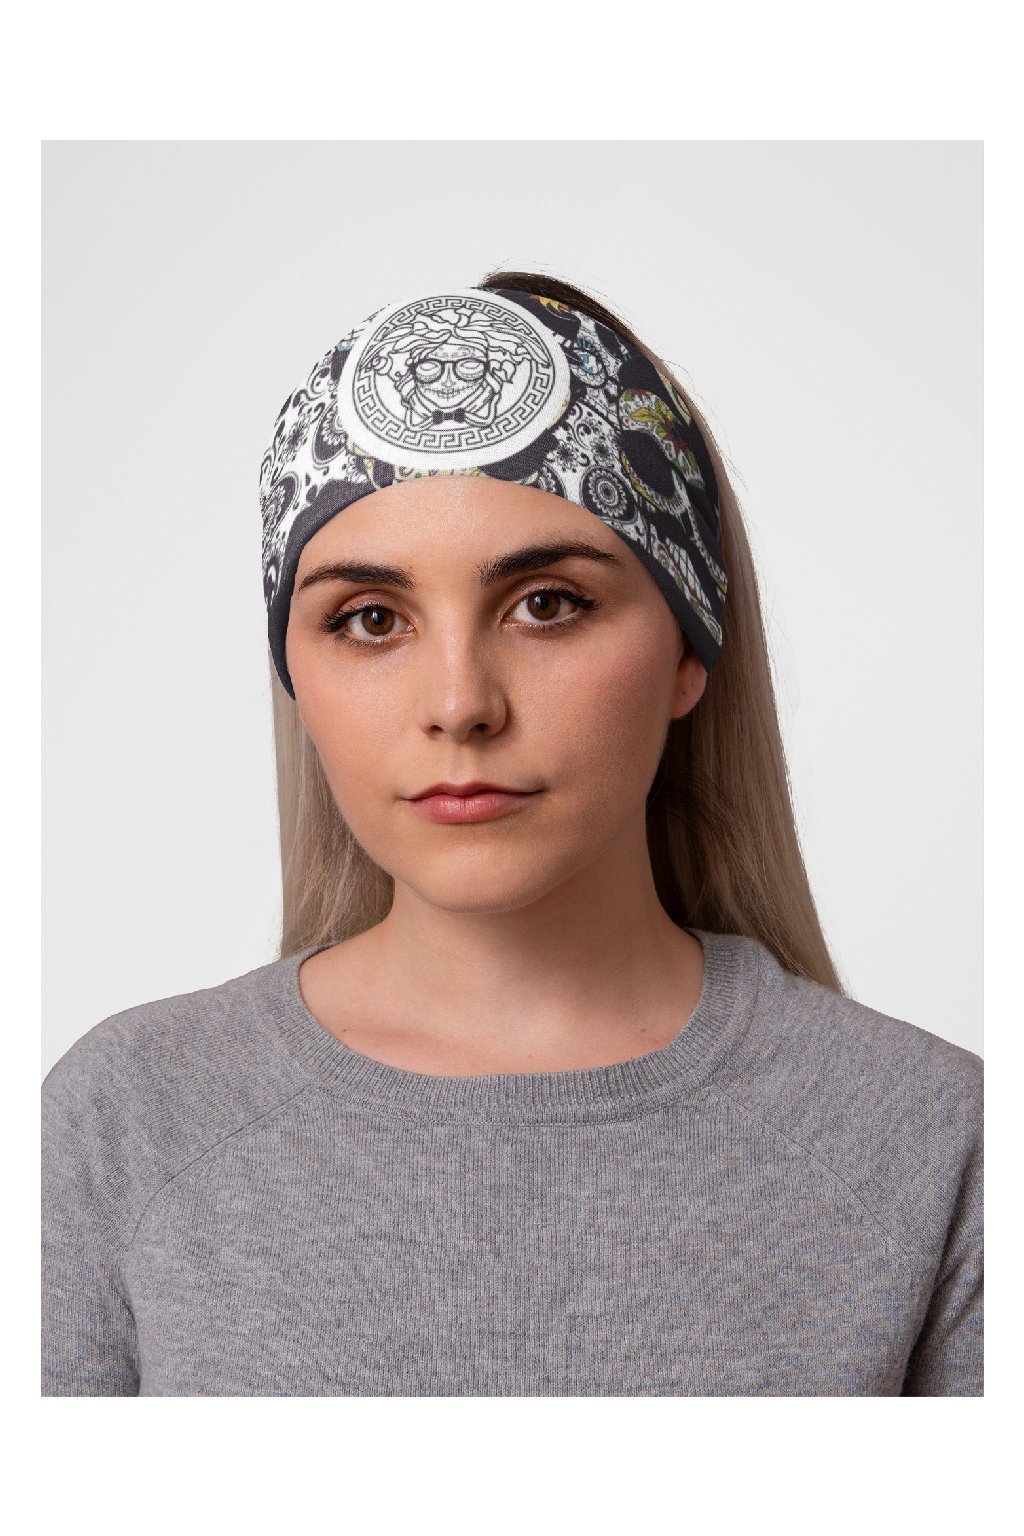 mockup of a woman at a studio with a tubular bandana on her head 36078 (5)